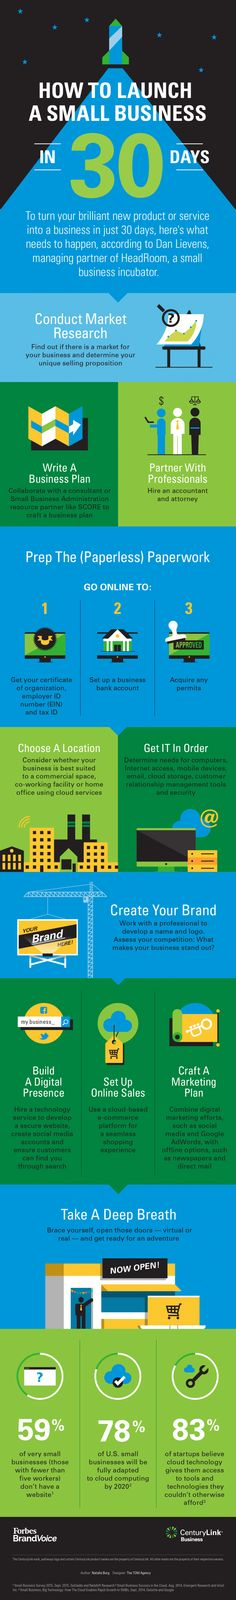 To Launch A Small Business In 30 Days [Infographic] To turn your brilliant new product or service into a business in just 30 days, here's what needs to happen.To turn your brilliant new product or service into a business in just 30 days, here's what needs Marketing Website, Marketing Services, Marketing Online, Marketing Digital, Business Marketing, Business Entrepreneur, Entrepreneur Quotes, Marketing Branding, Business Model